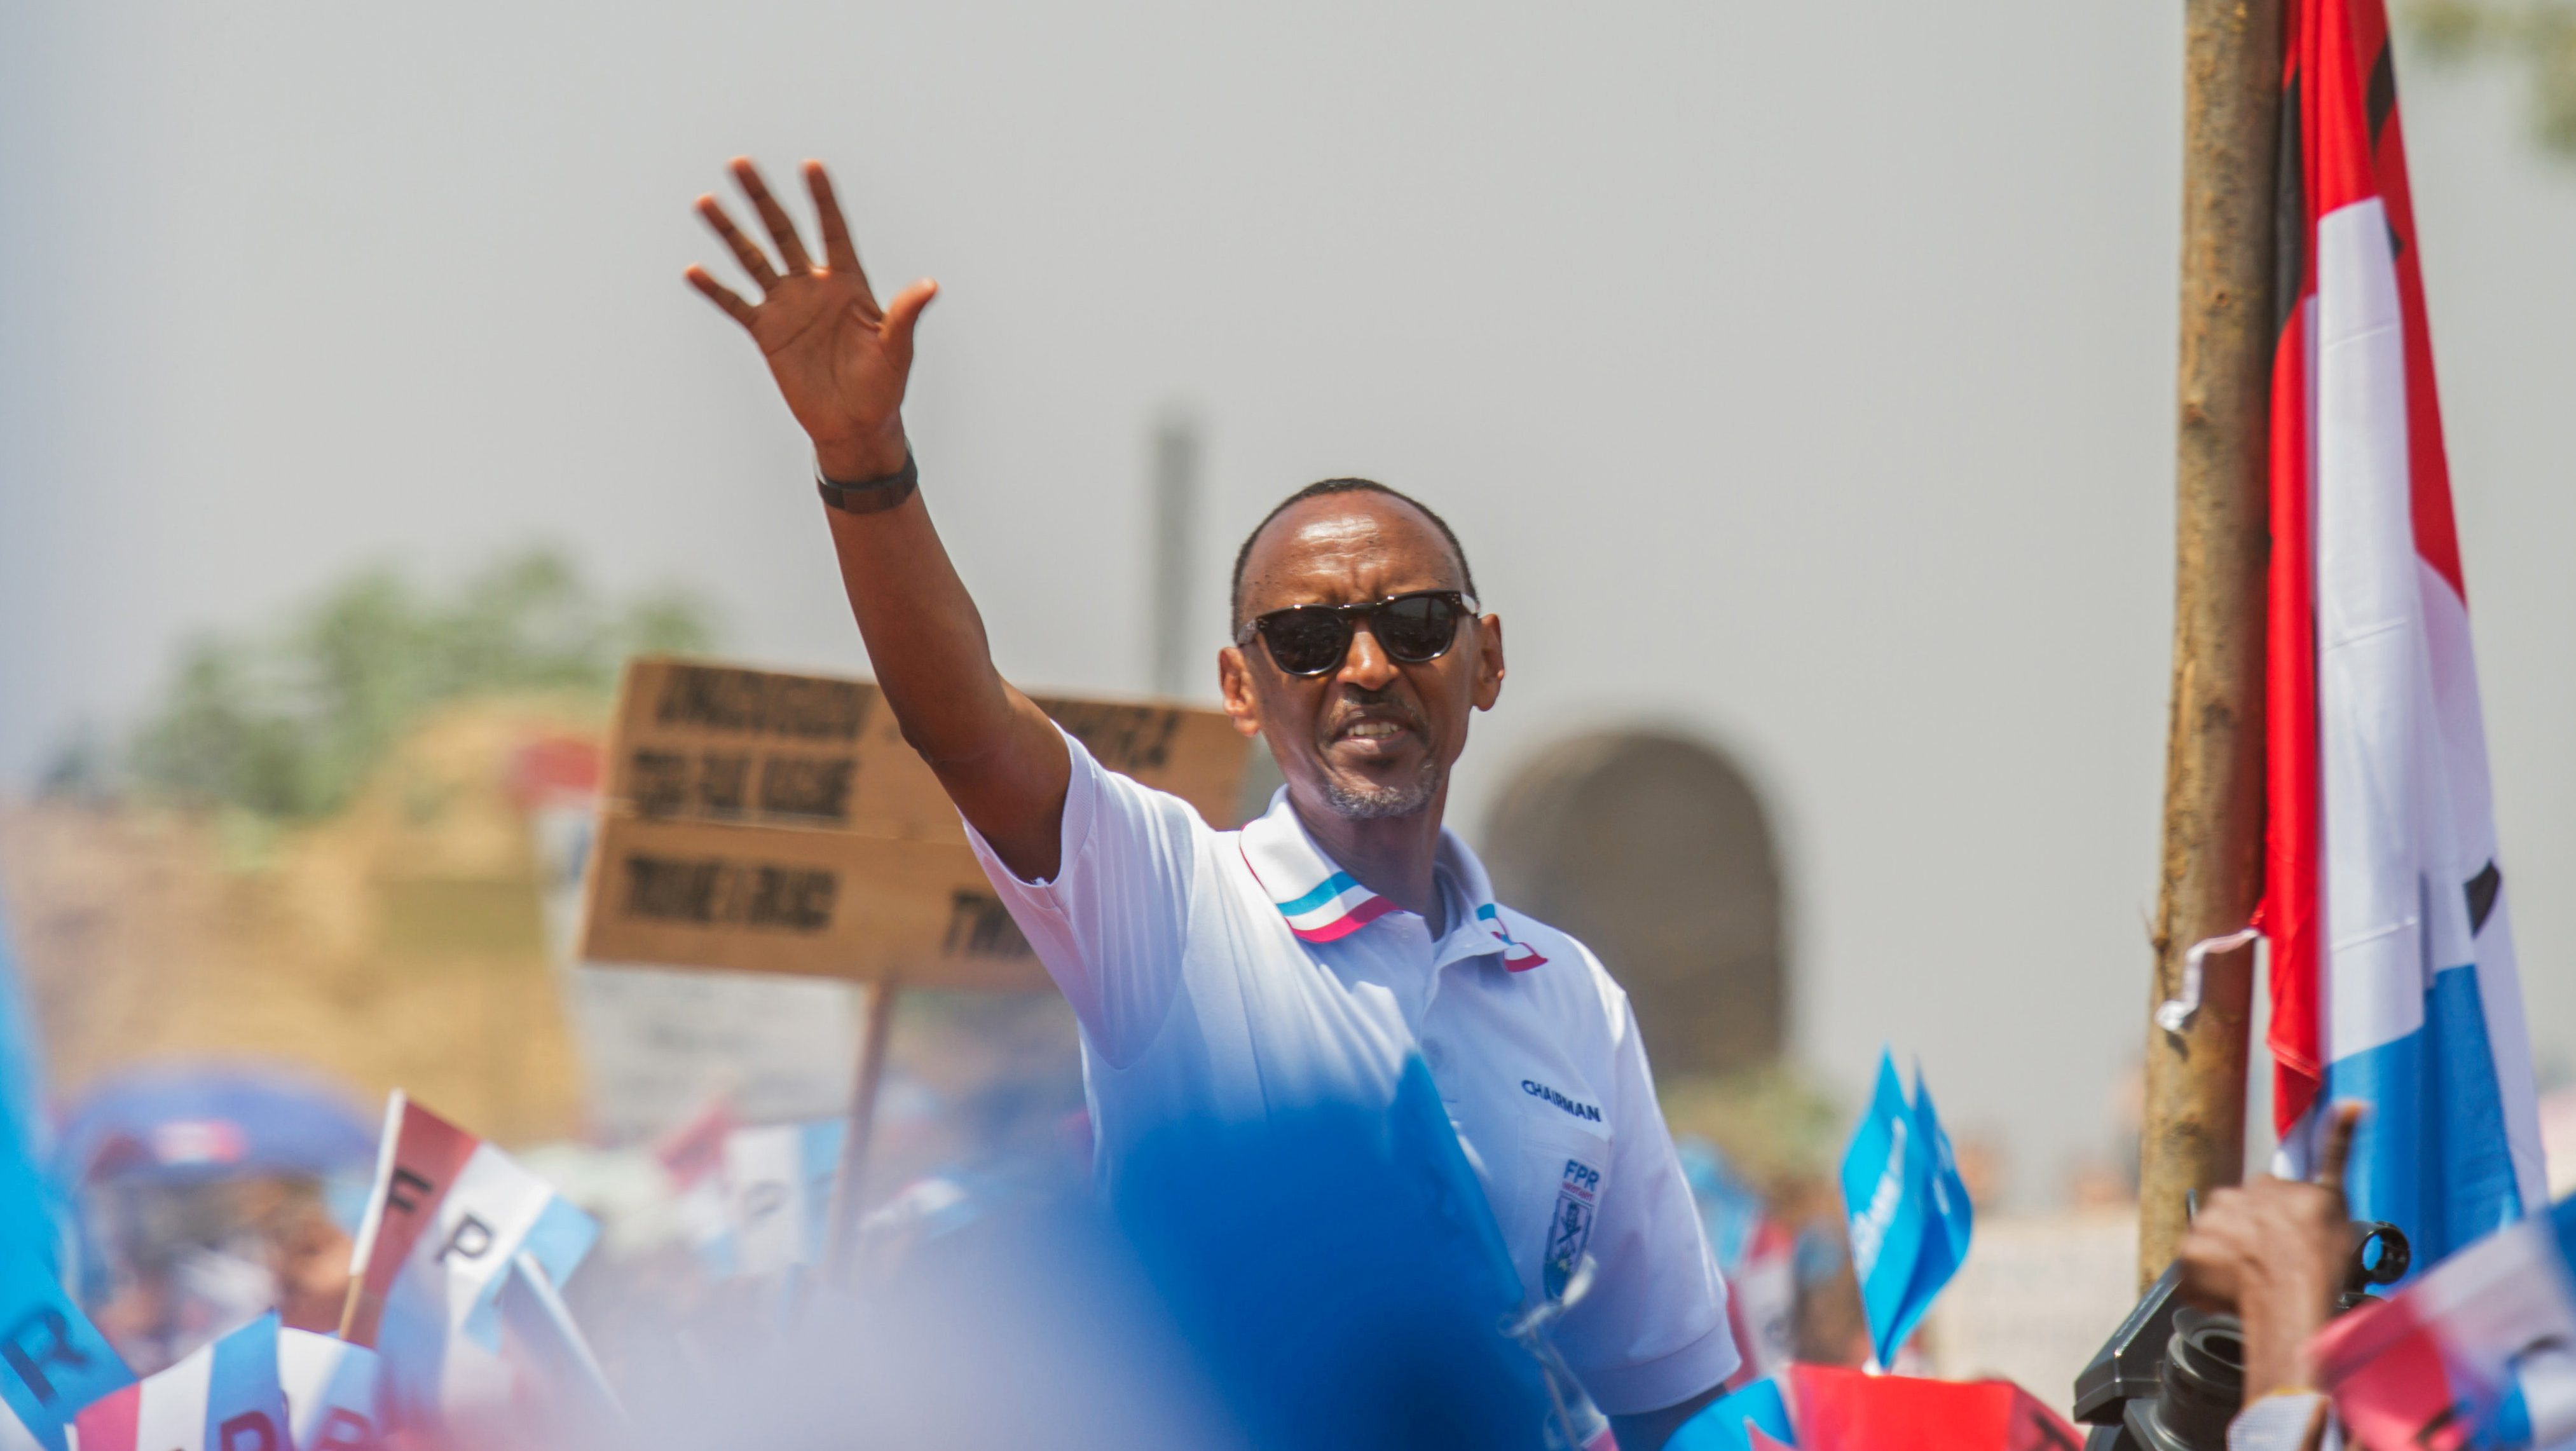 Rwandan President Paul Kagame of the ruling Rwandan Patriotic Front (RPF) waves to his supporters during his final campaign rally in Kigali, Rwanda August 2, 2017.